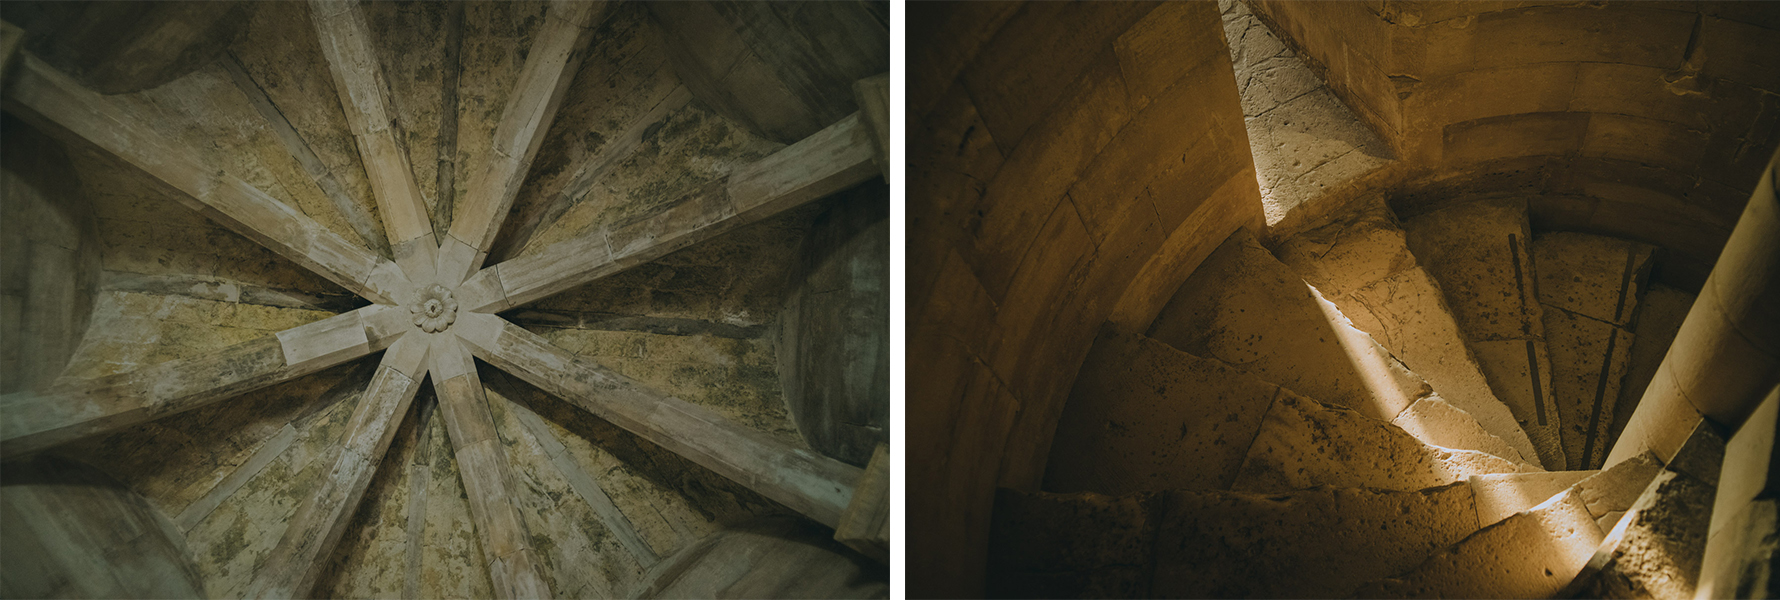 Details of the ceilings of Castel del Monte in Apulia Itlay - Due dettagli dei soffitti di catel dem Monte in Puglia, Italia